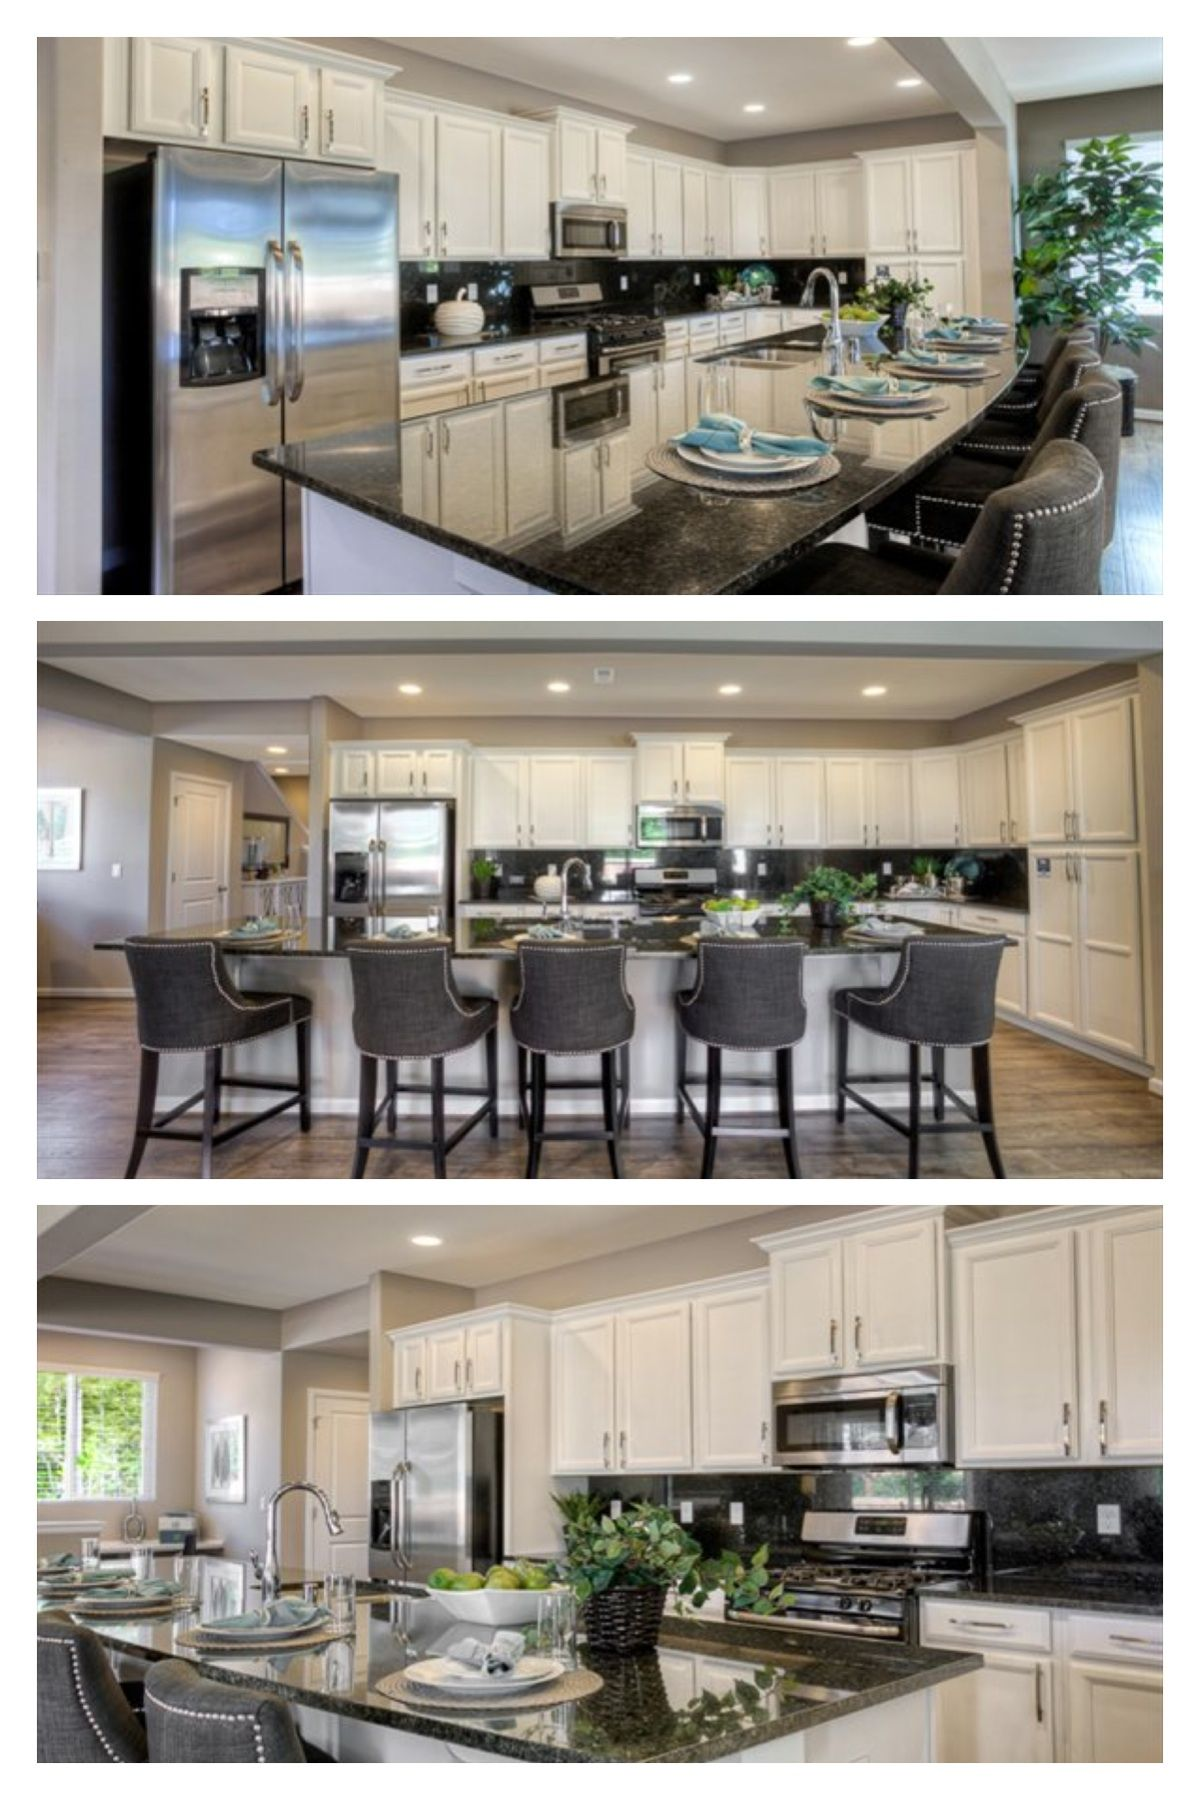 Calling all COOKS! Do you think this Lennar kitchen is worth a few ...